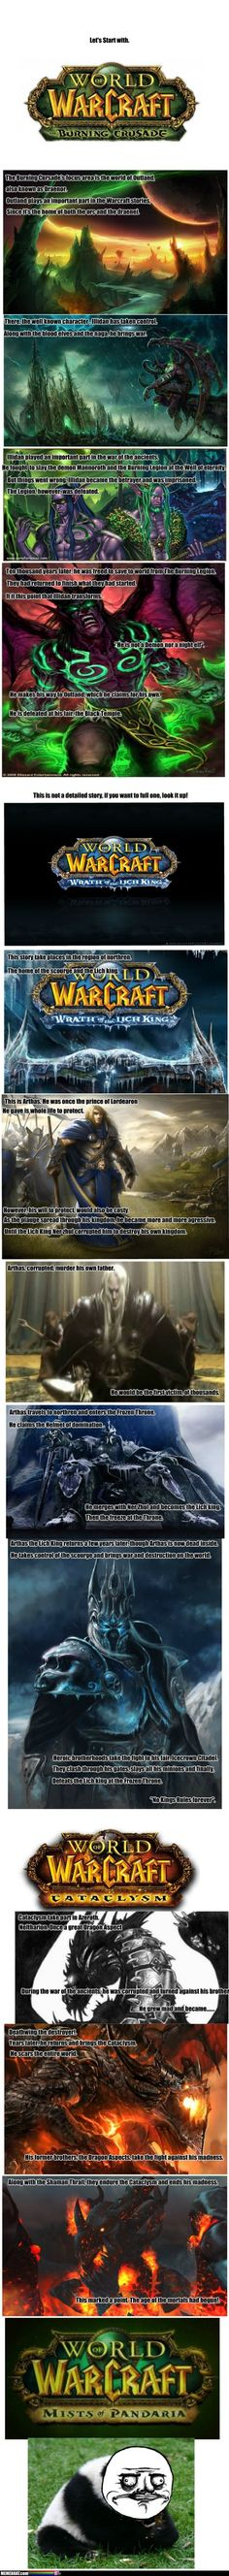 The World Of Warcraft Villians